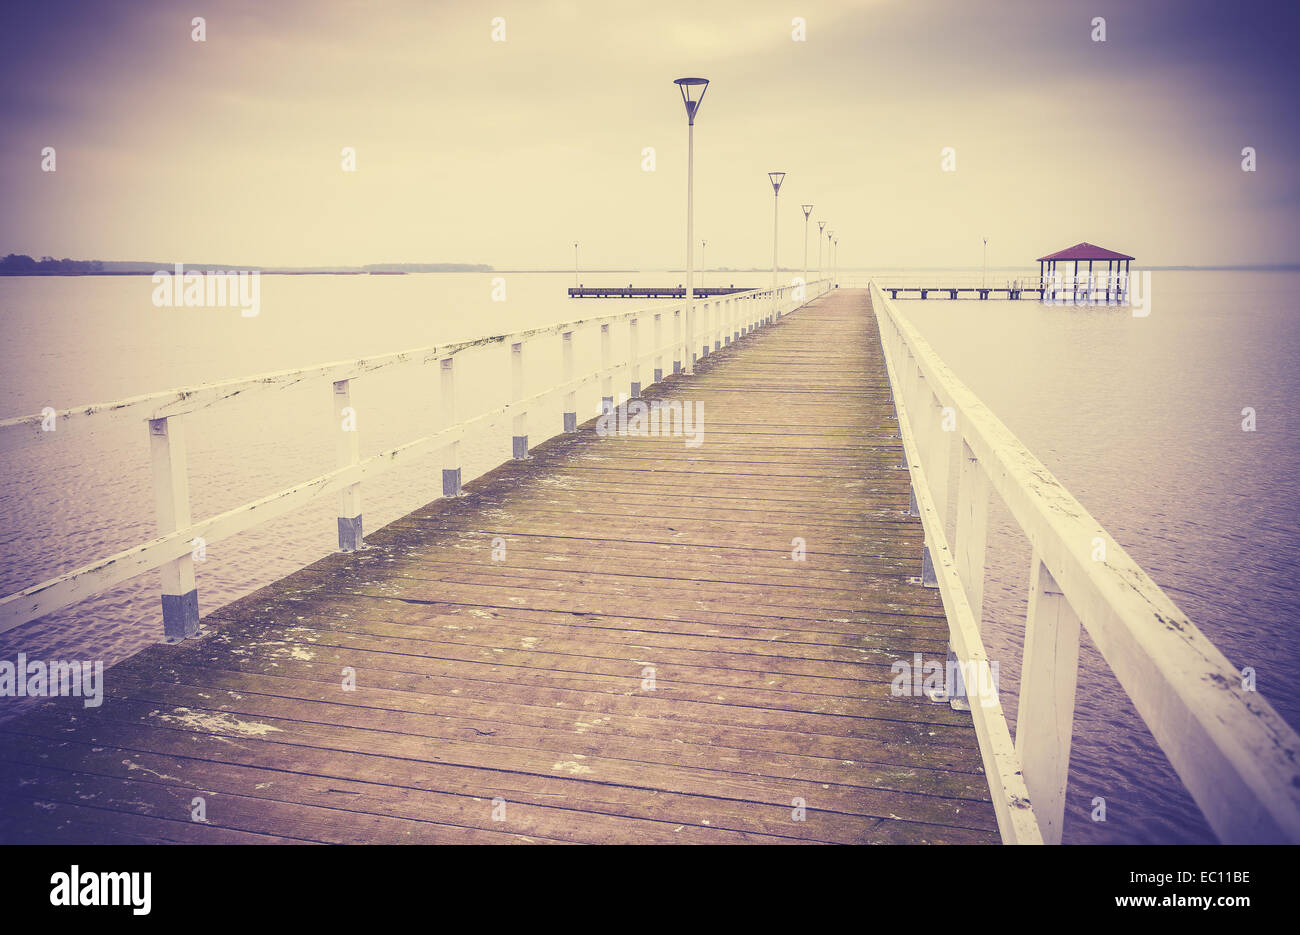 Vintage retro filtered wooden pier at sunset. - Stock Image